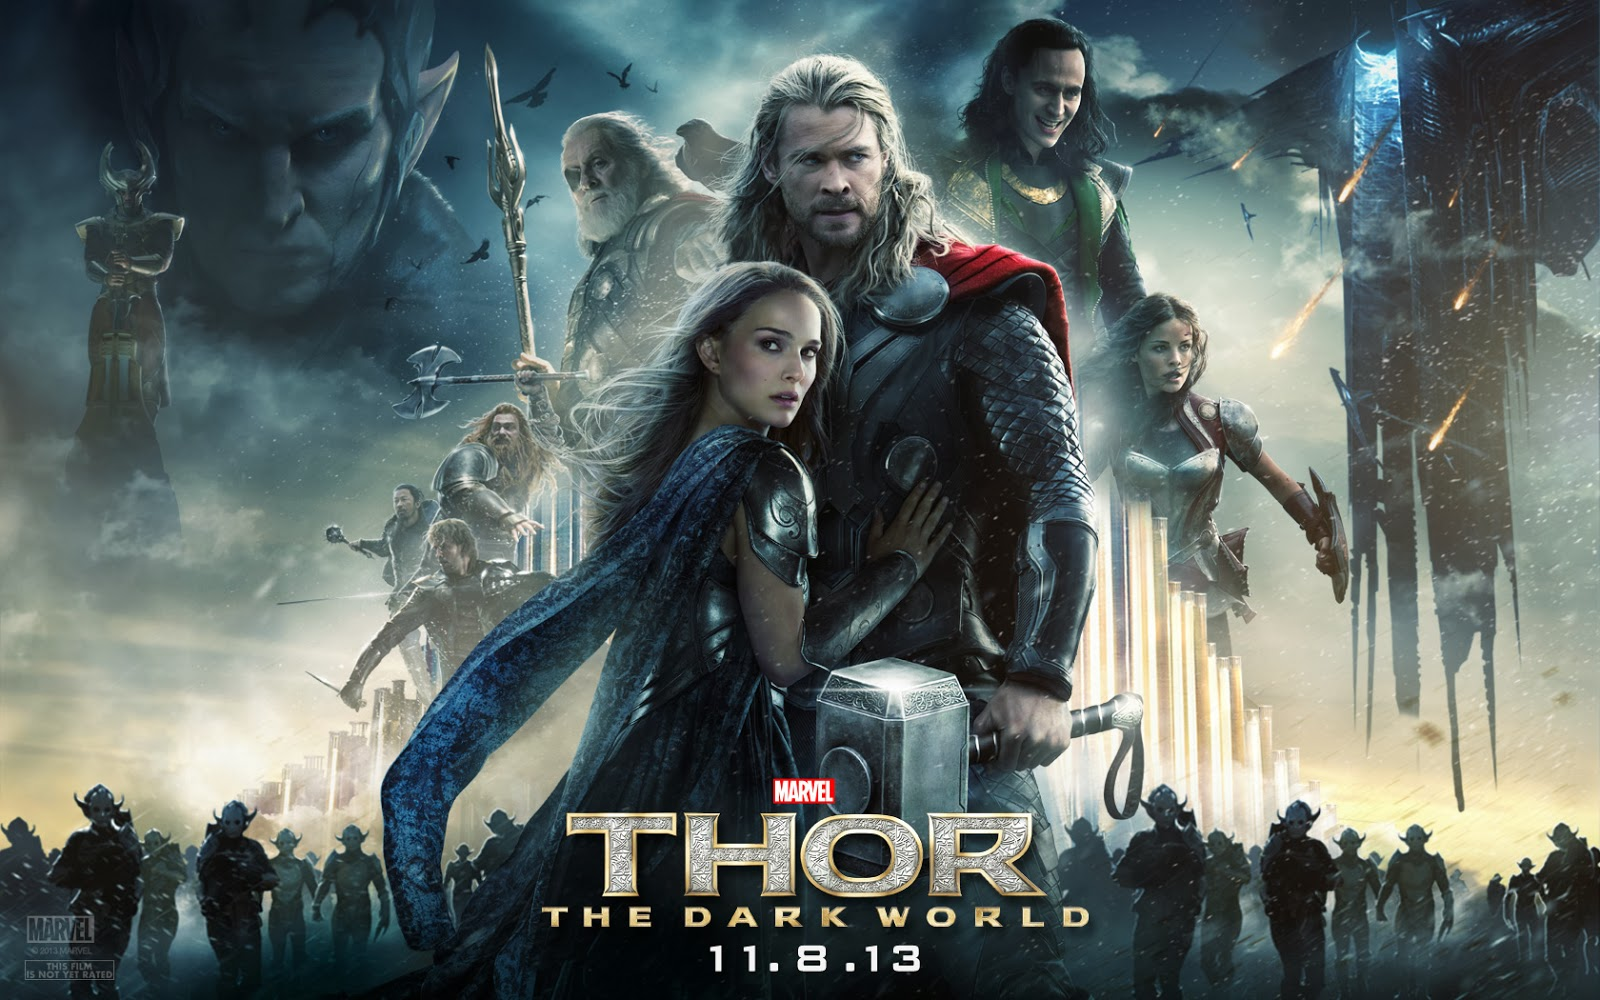 thor the dark world movie wallpapers - 61 Thor The Dark World HD Wallpapers Backgrounds